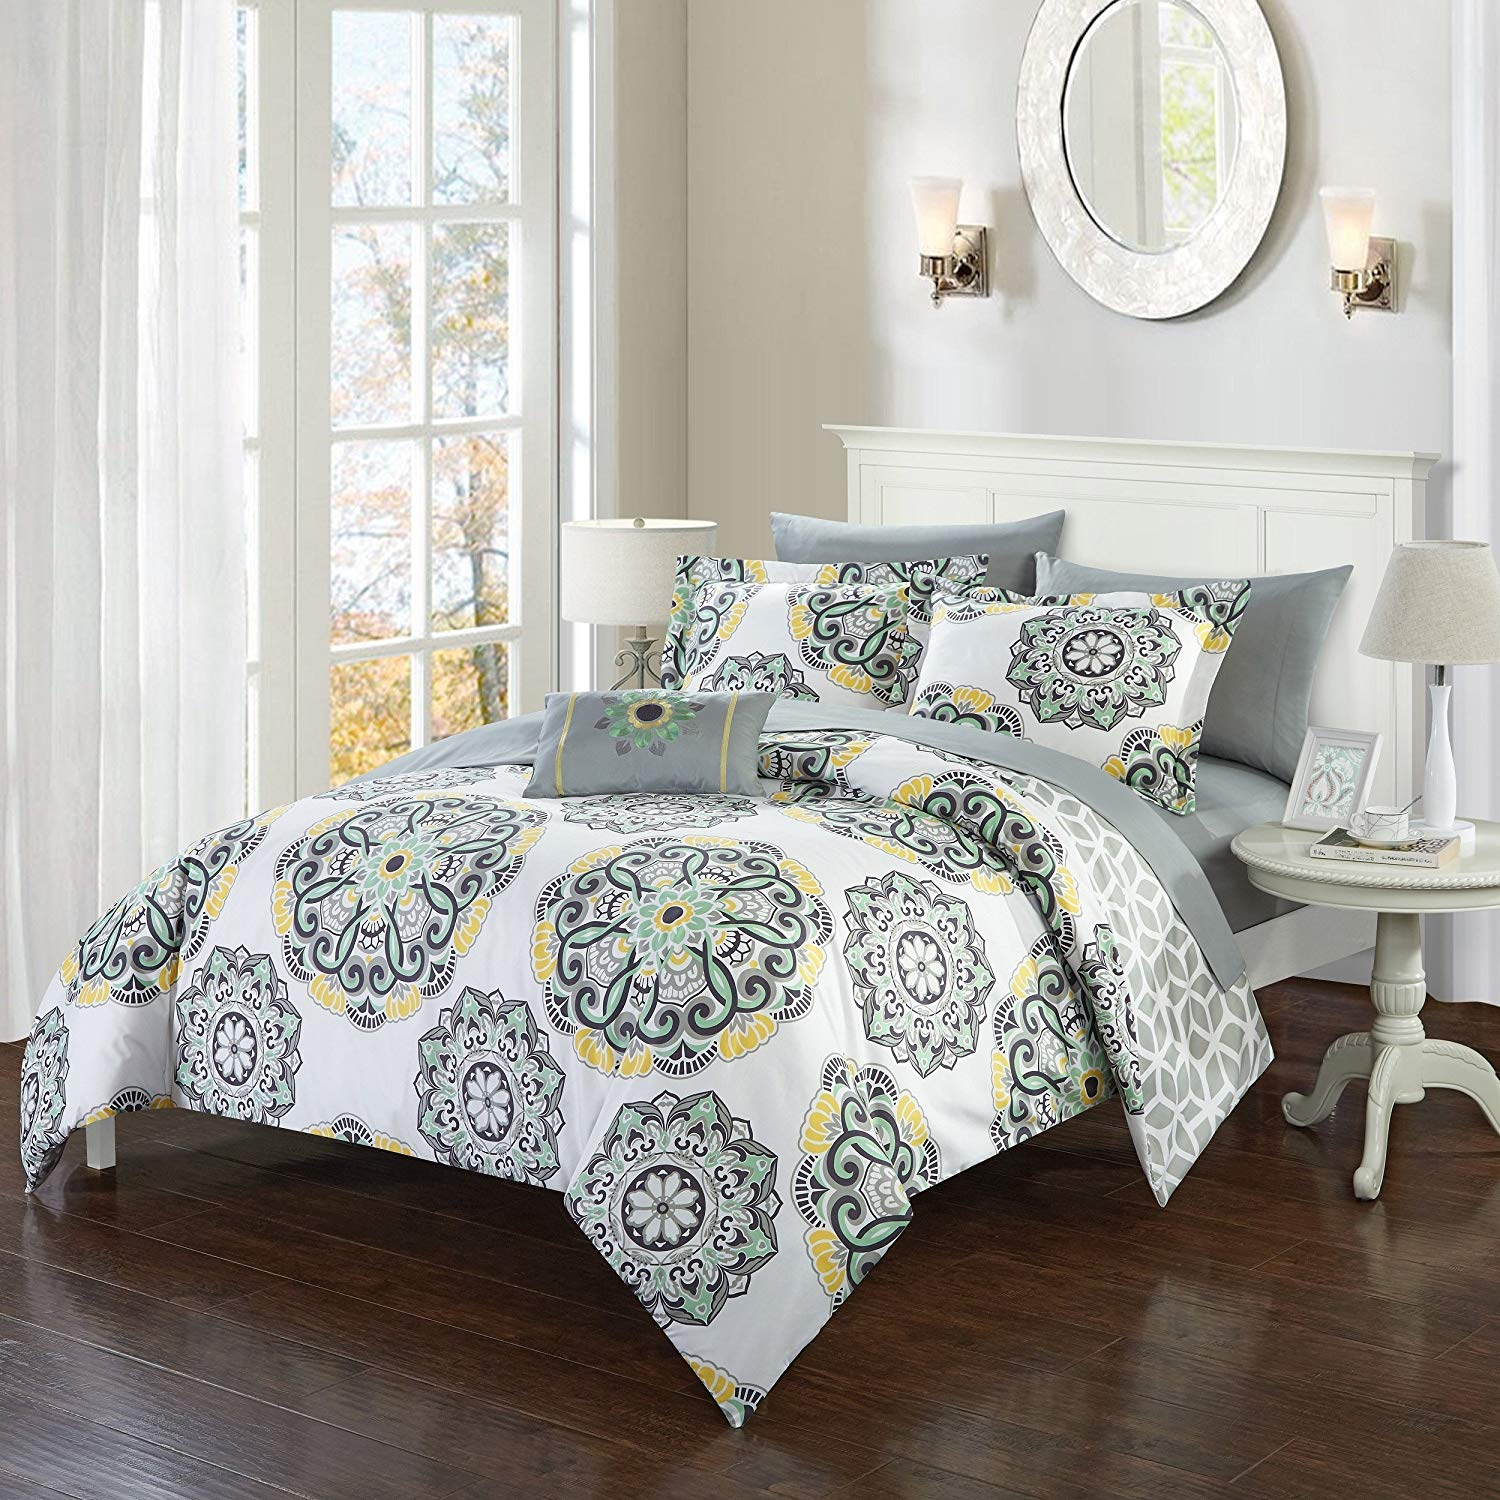 8 Piece Yellow Blue Grey Medallion Floral Pattern Comforter with Sheets Queen Set, Large Scale Mandala Motif Design, Geometric Print Reversible Bedding, Features Soft & Warmth, Microfiber, Polyester